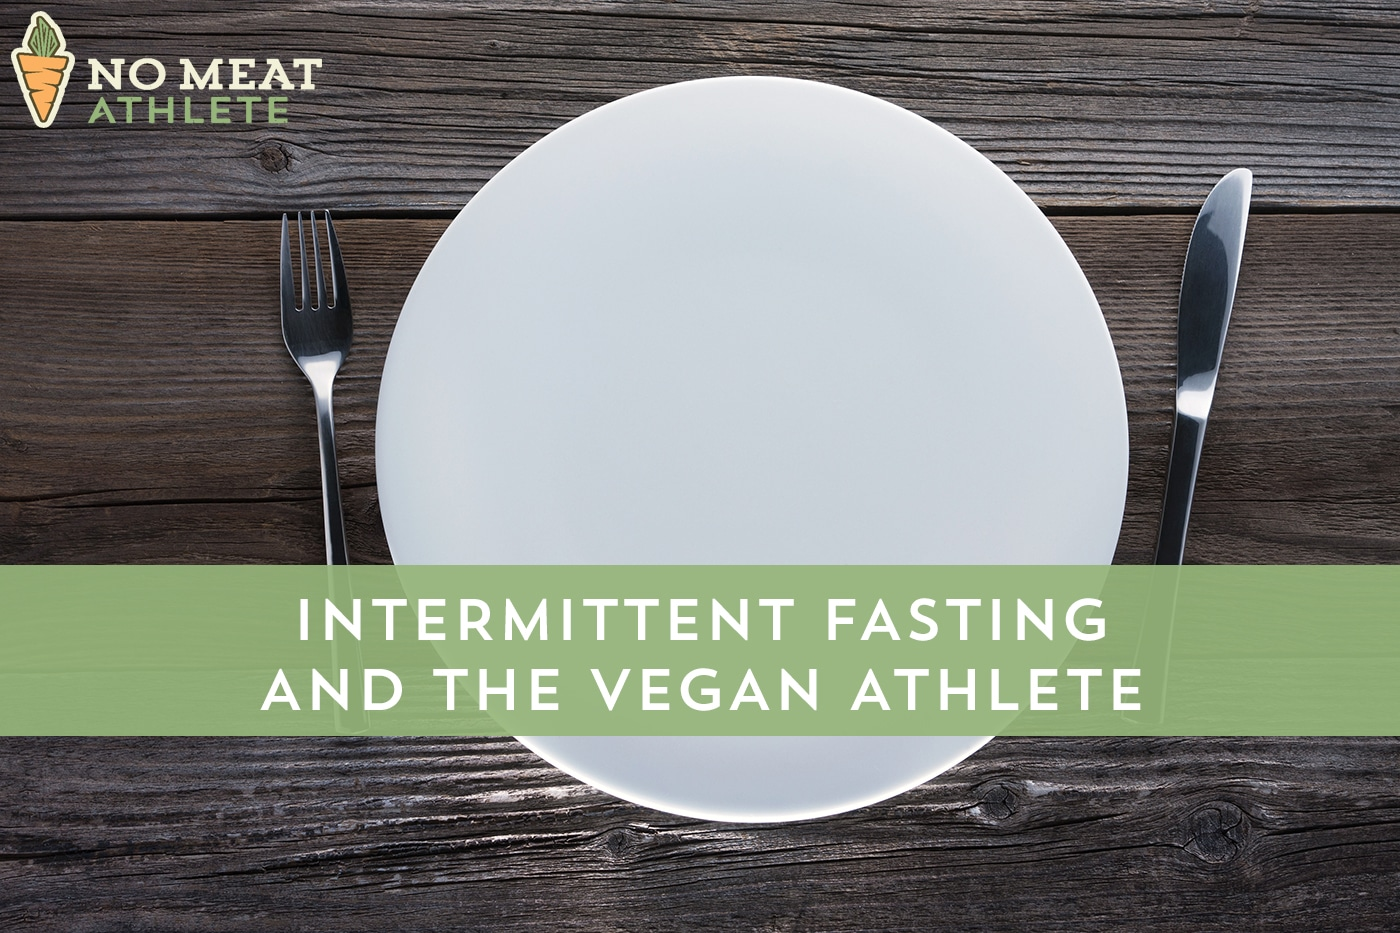 intermittent fasting lose weight get fit and add years to your life with intermittent fasting